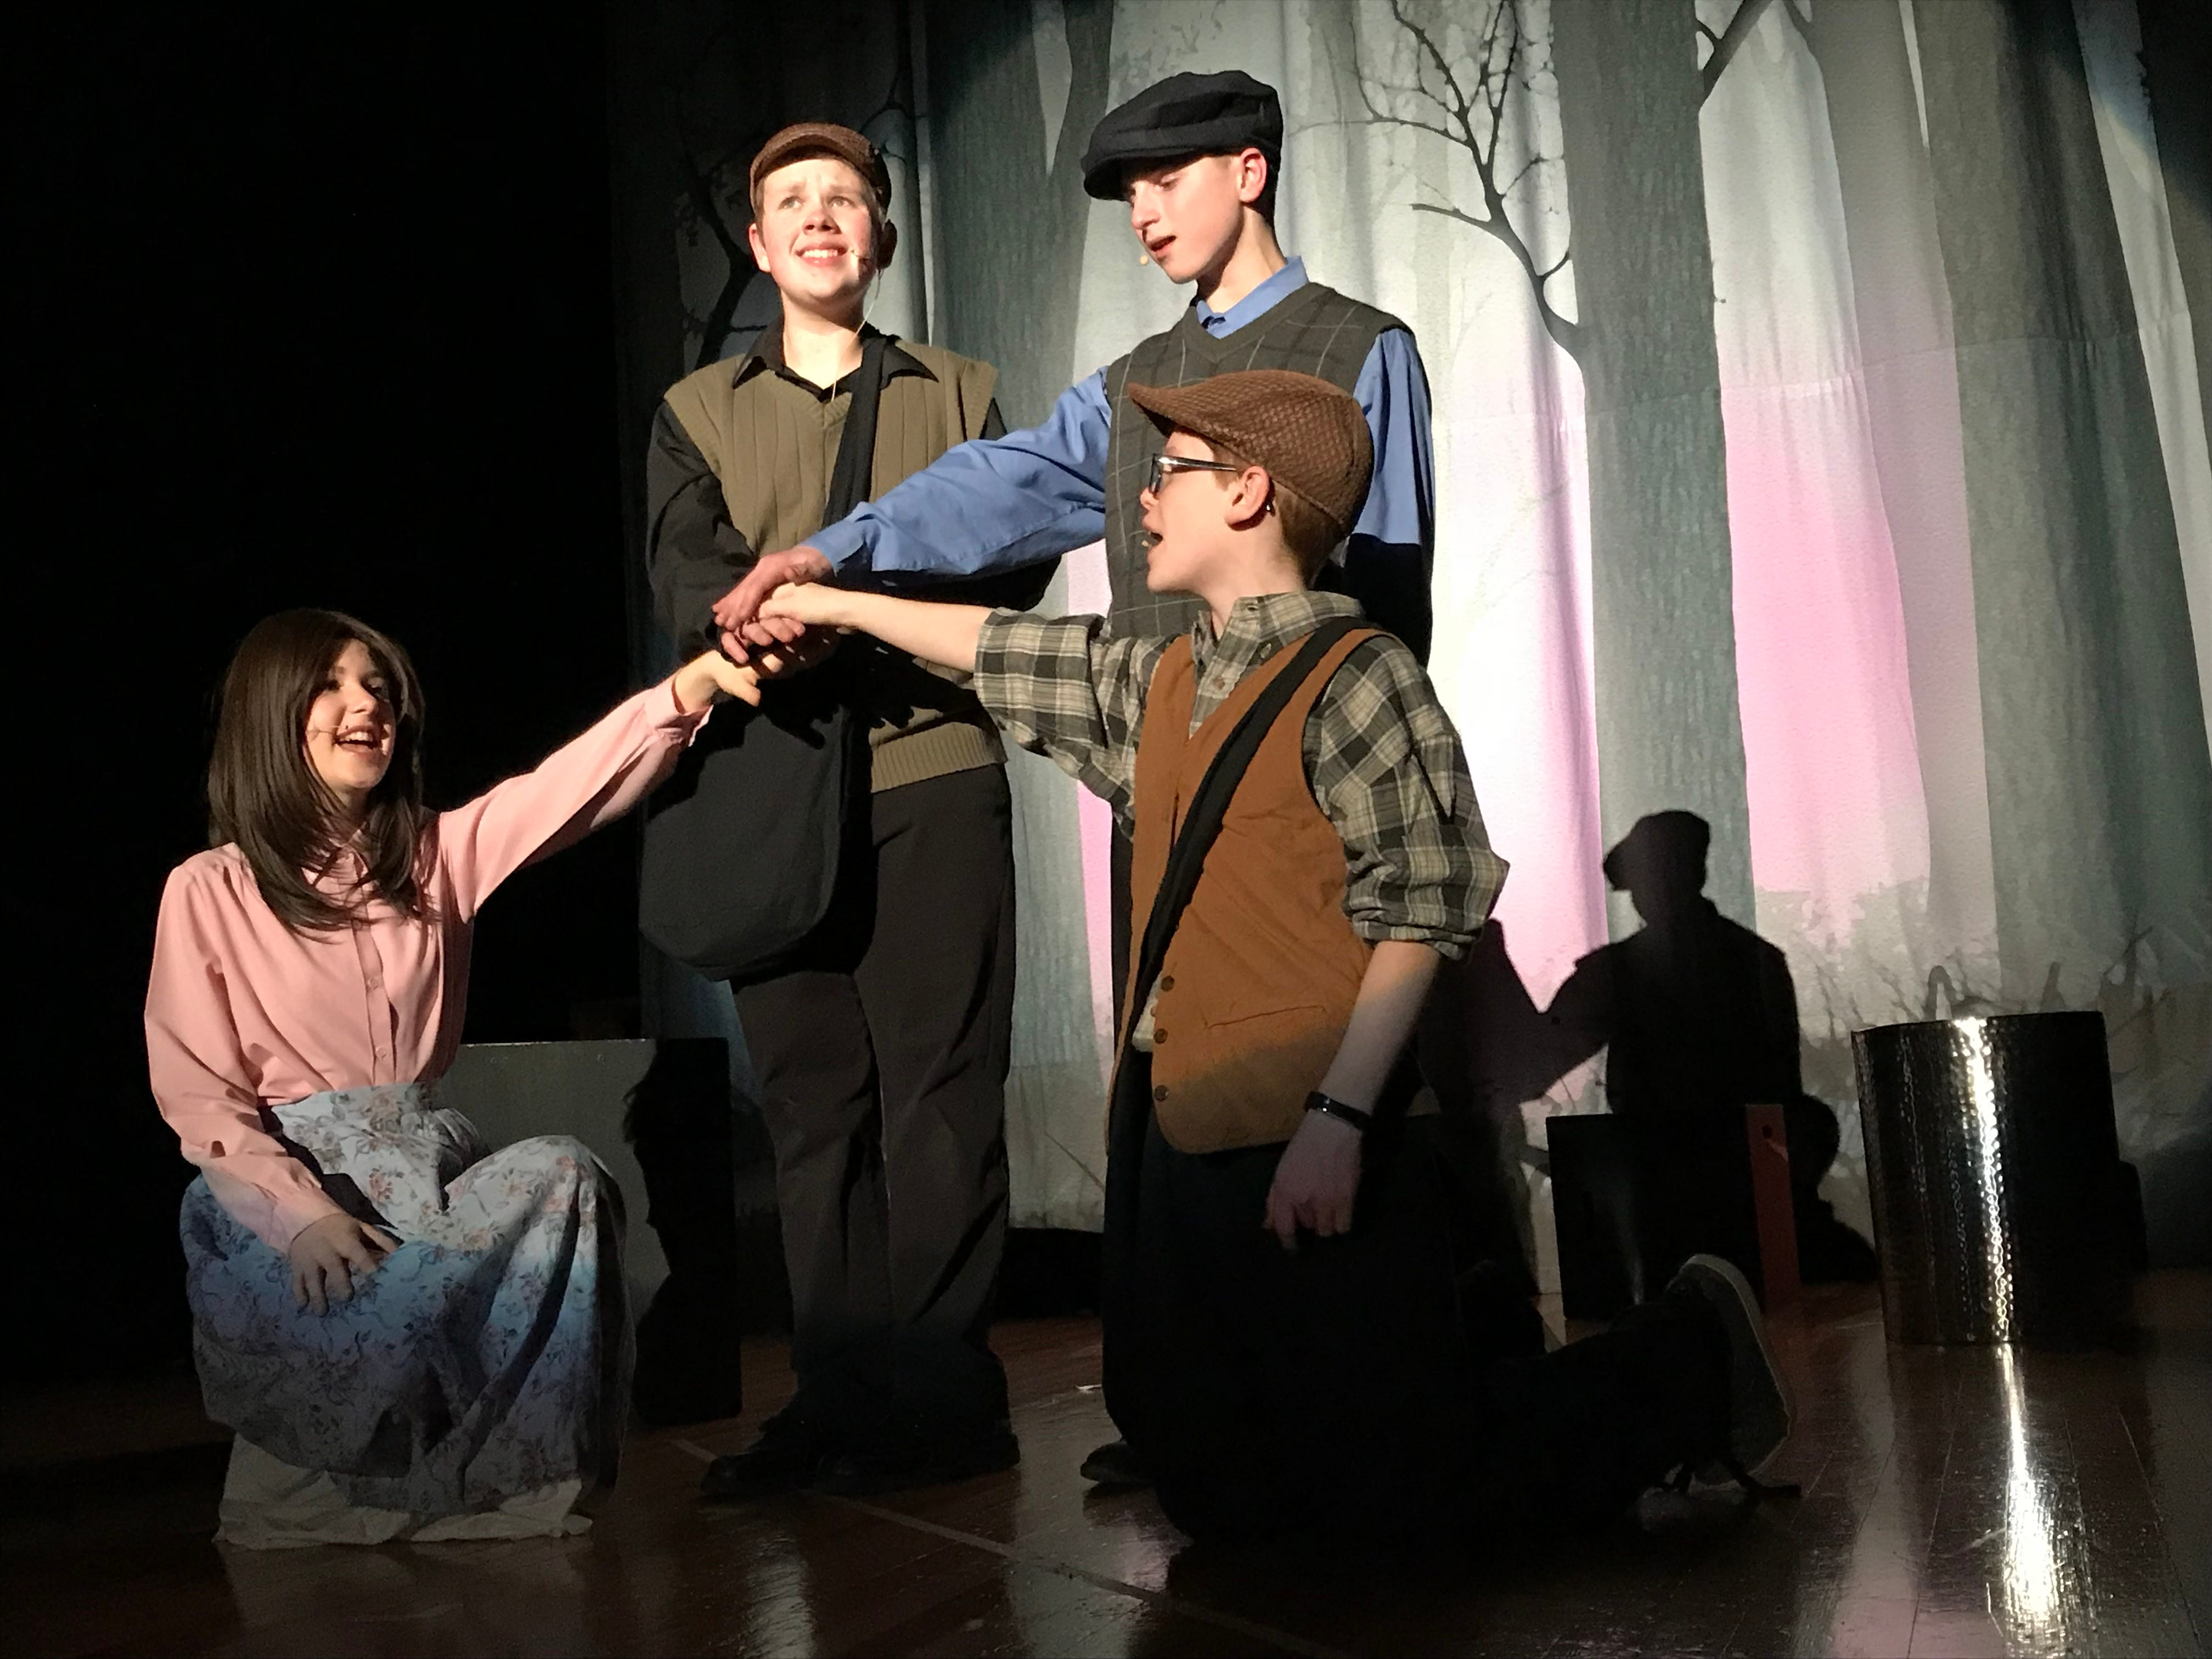 """From left, Madi Ross (as Katherine Plumber), Ryan Wible (as Davey), Nathan Phillips (as Jack Kellyl) and Luke Detweiler (as Les) rehearse a scene for Chambersburg Area Middle School North Drama Club's latest production, """"Newsies,"""" on Wednesday evening, Jan. 24, 2019. Show times are 7:30 p.m. Feb. 1 and 2 in the CAMS North auditorium. For tickets, $8 plus fees, go to showtix4u.com."""